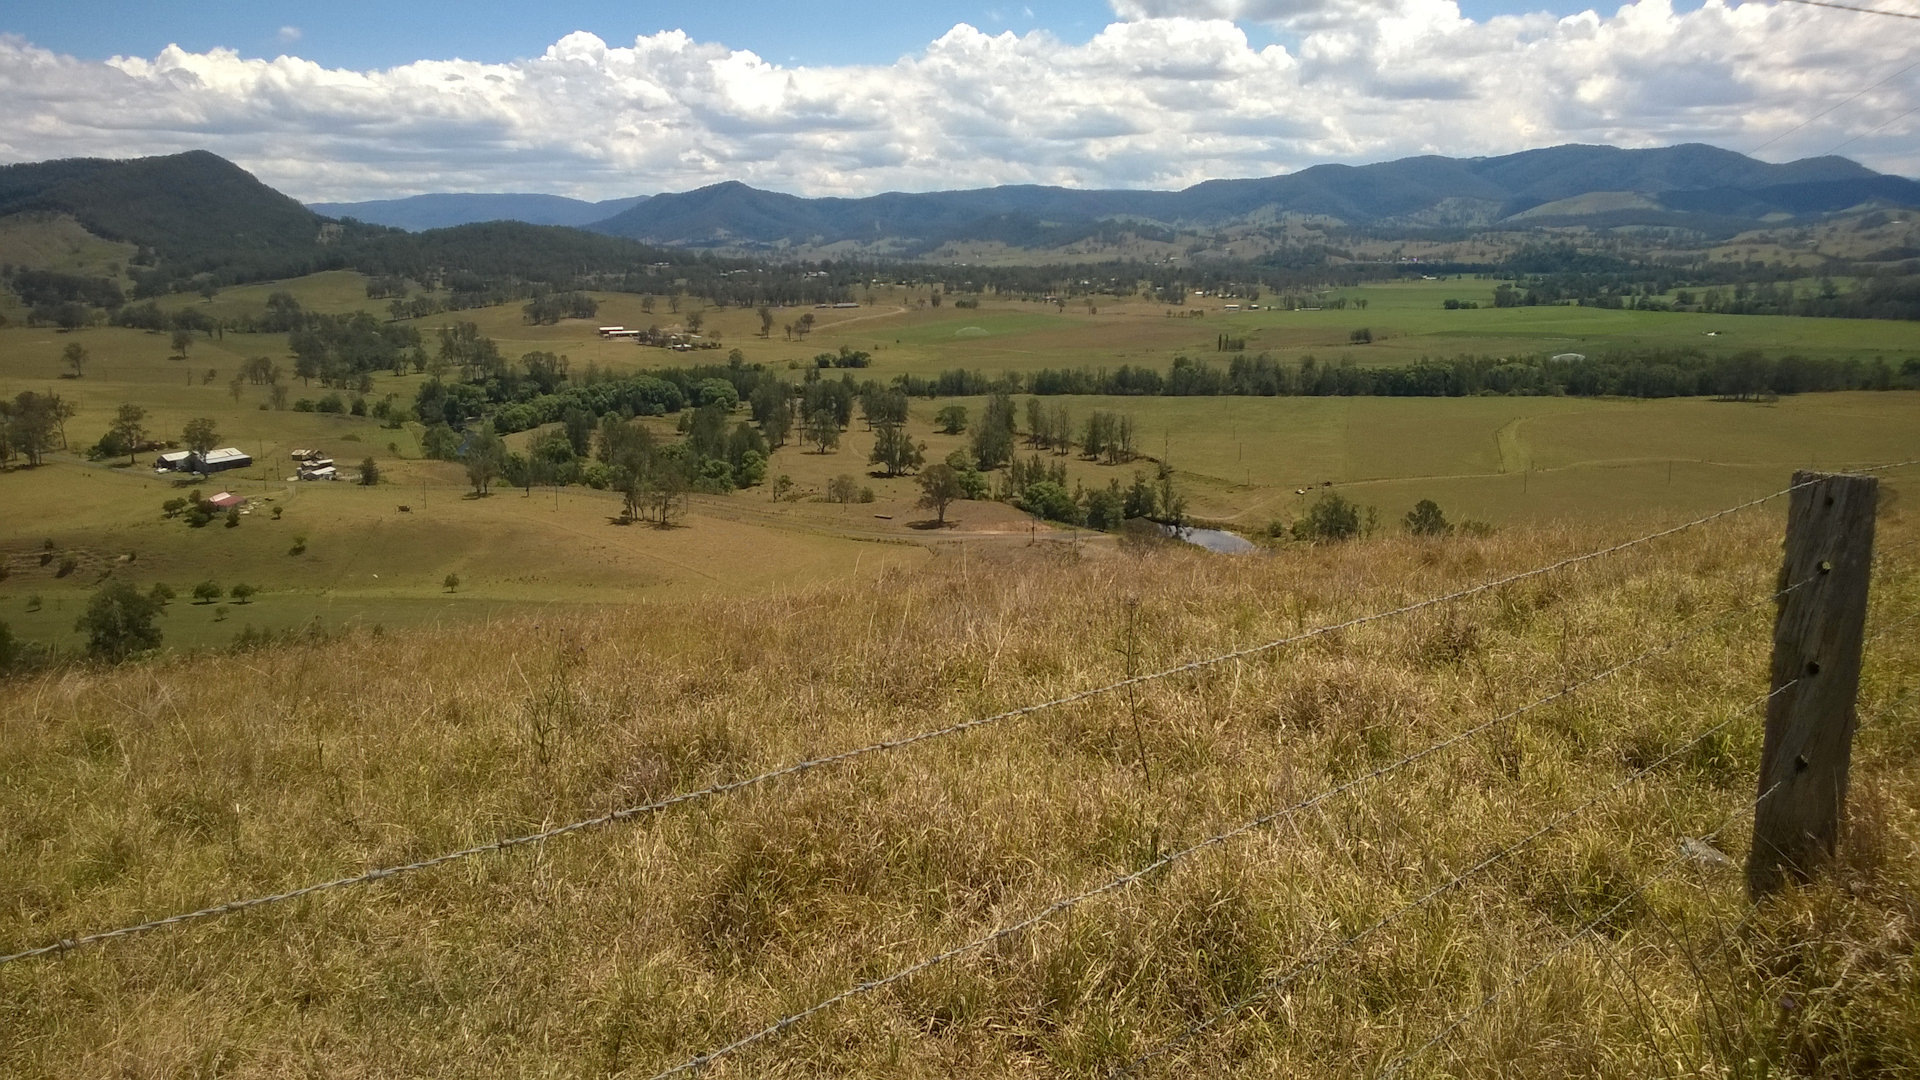 Panoramic views over Gloucester and Barrington Valley from the Kia Ora Lookout